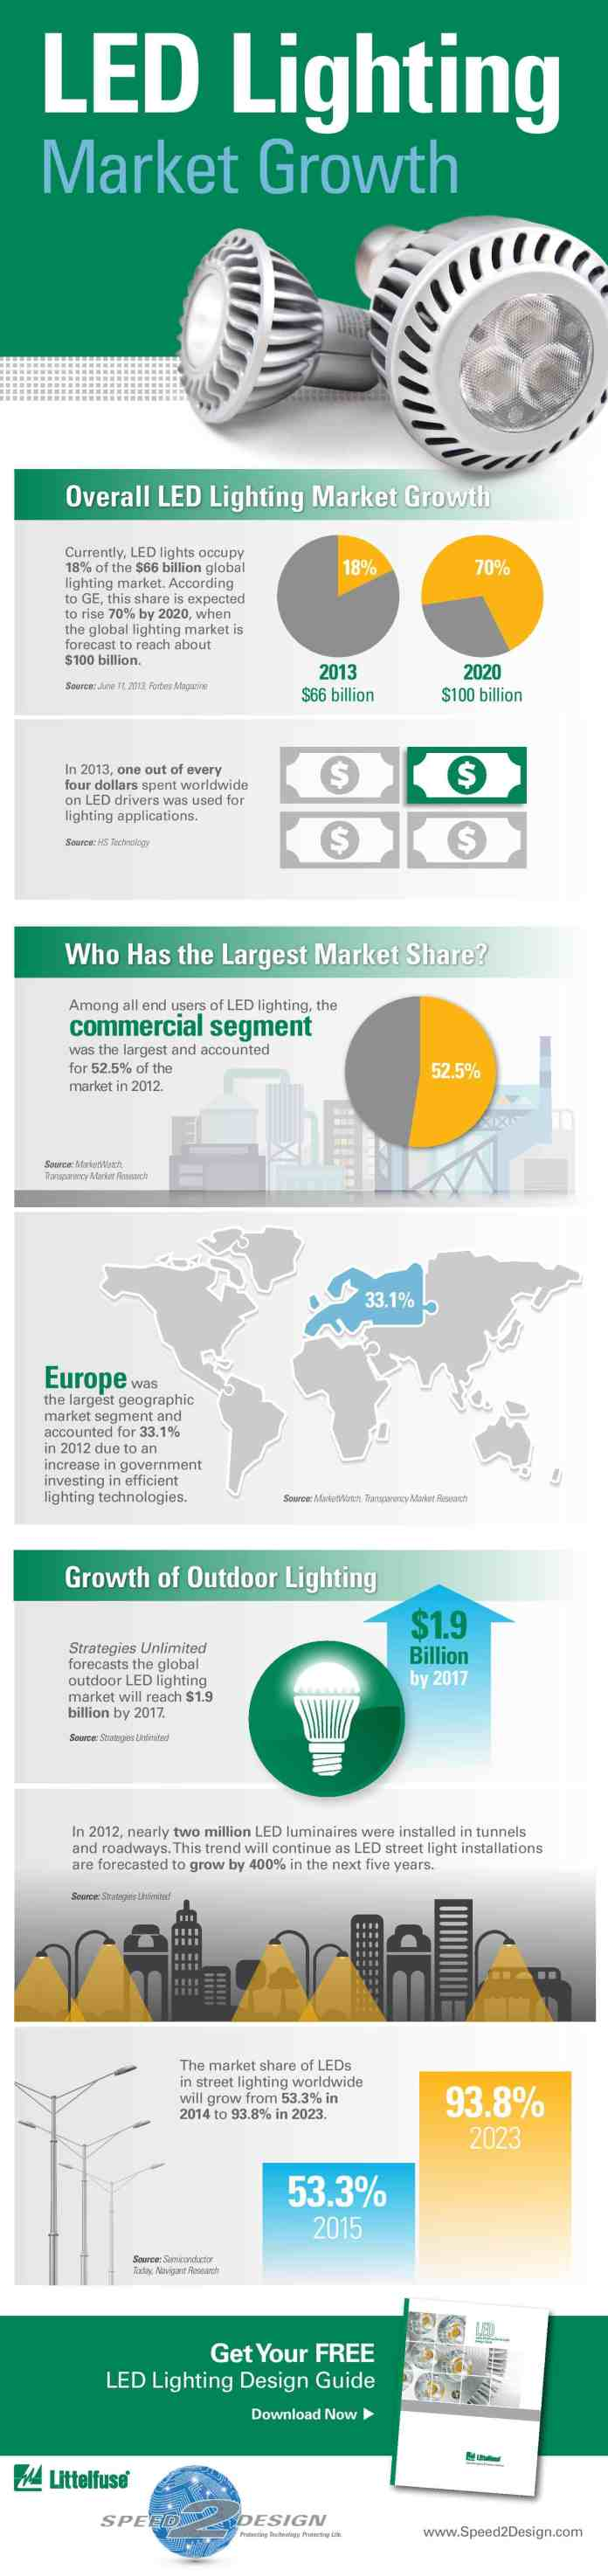 led market growth